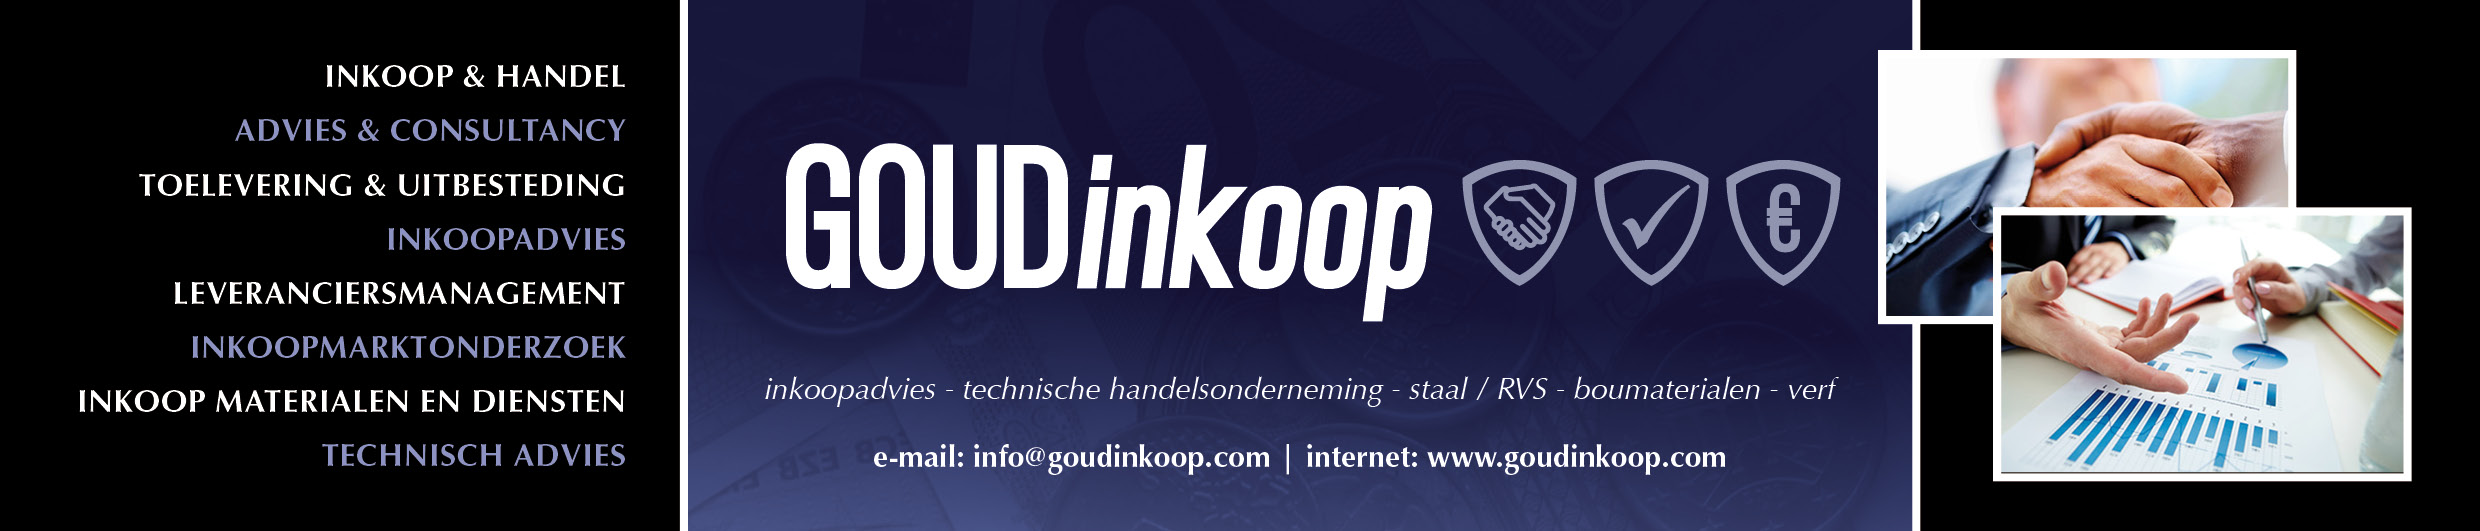 Websitebanner Goudinkoop